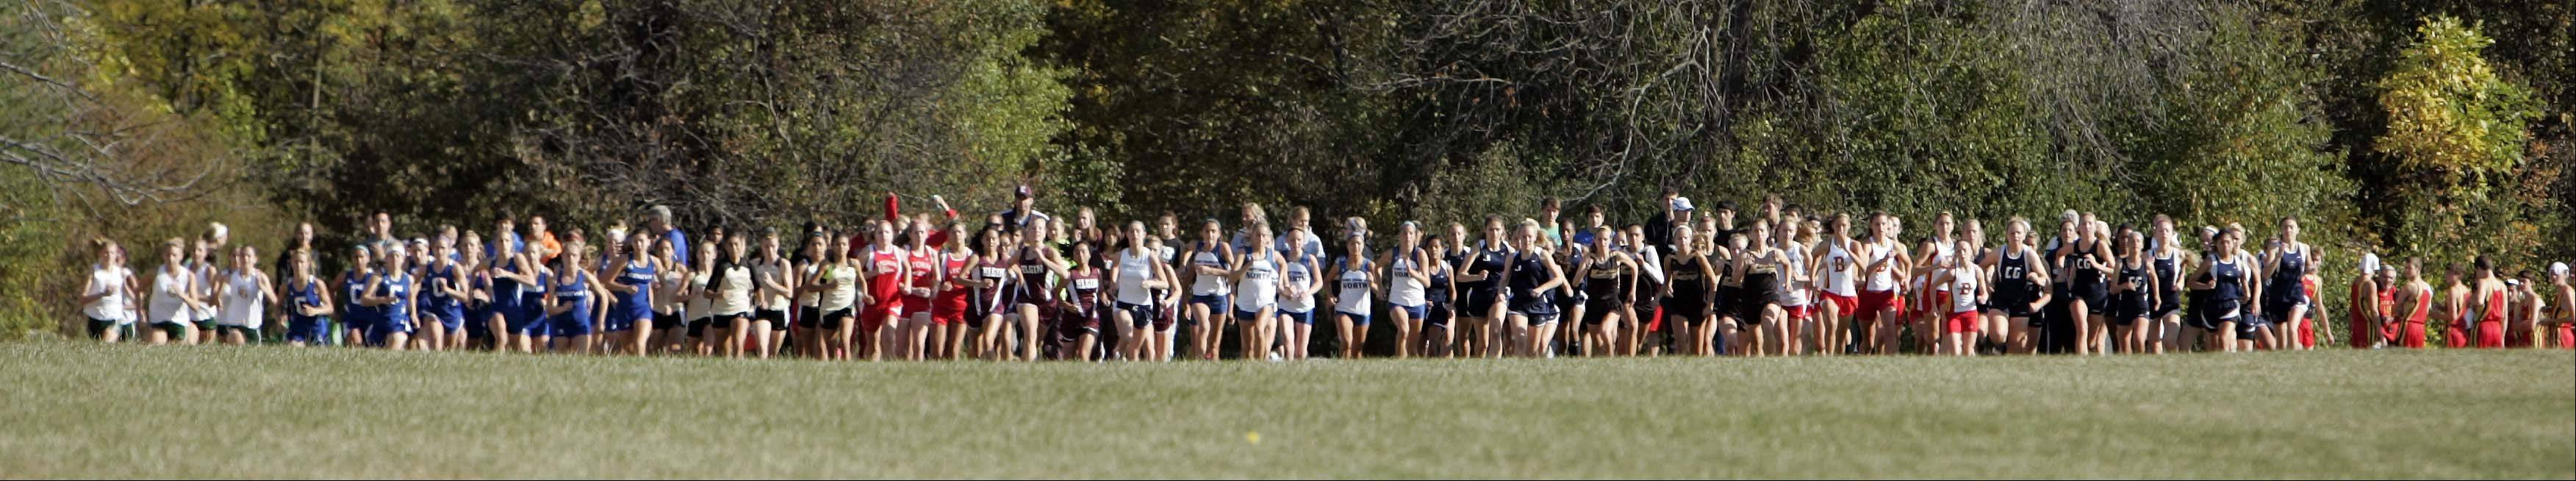 The start of the girls varsity race during the St. Charles North Cross County Invite Saturday September 29, 2012 at LeRoy Oakes in St. Charles.